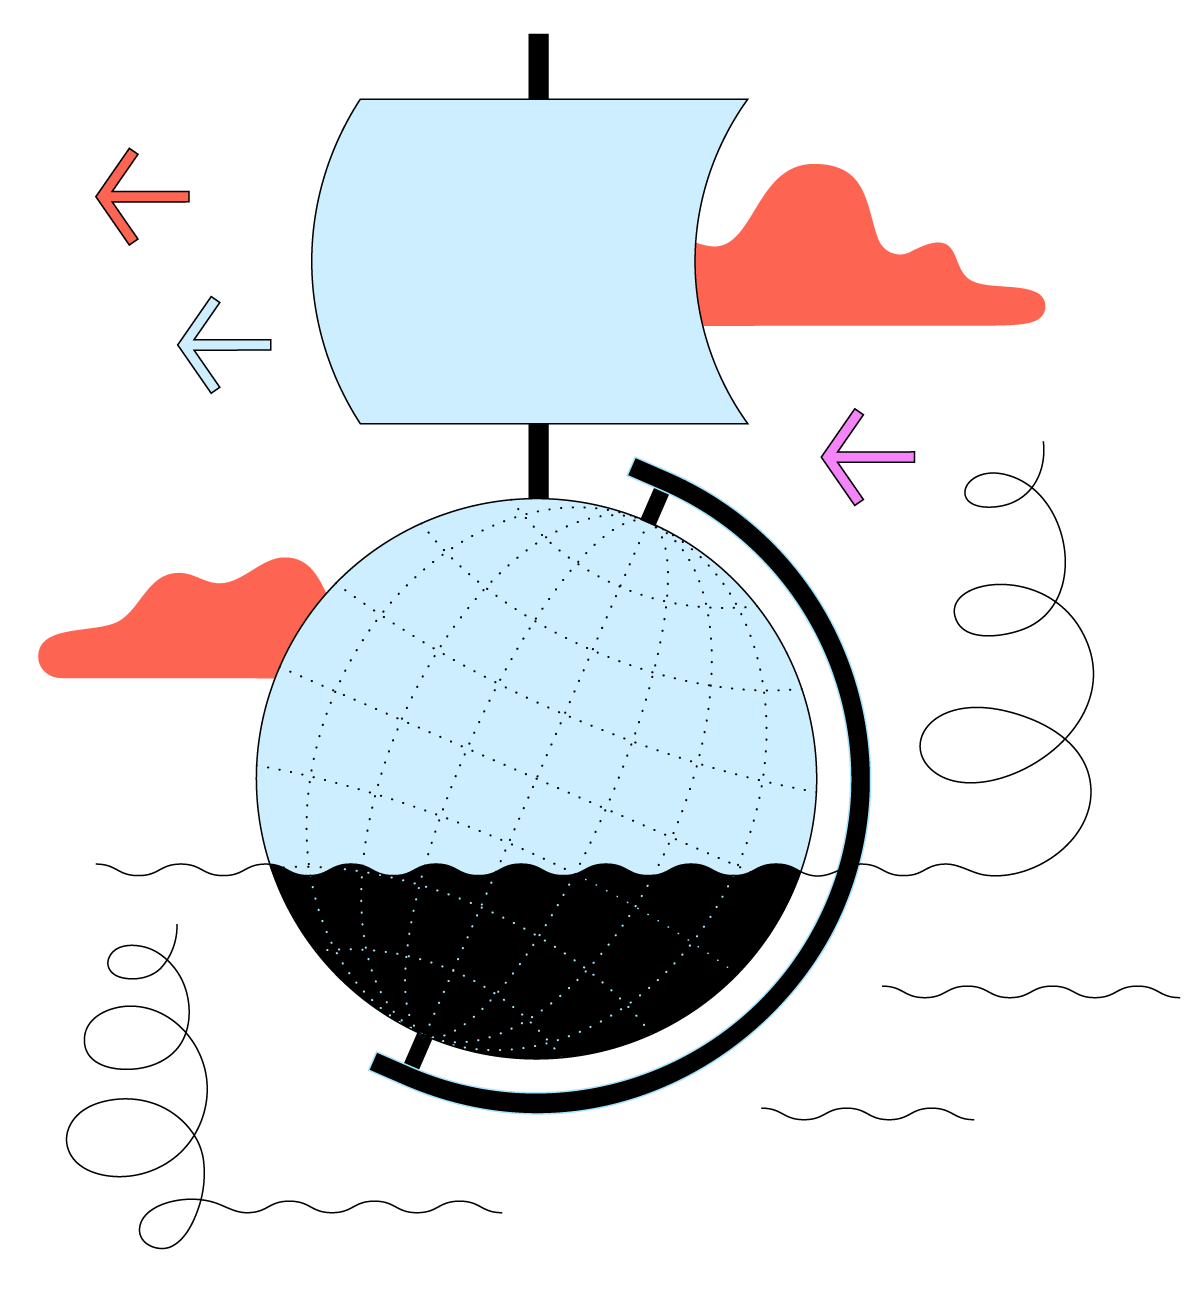 Cartoon graphic of the ocean with a globe in it with a sail attached on top, making the globe look like a sailboat